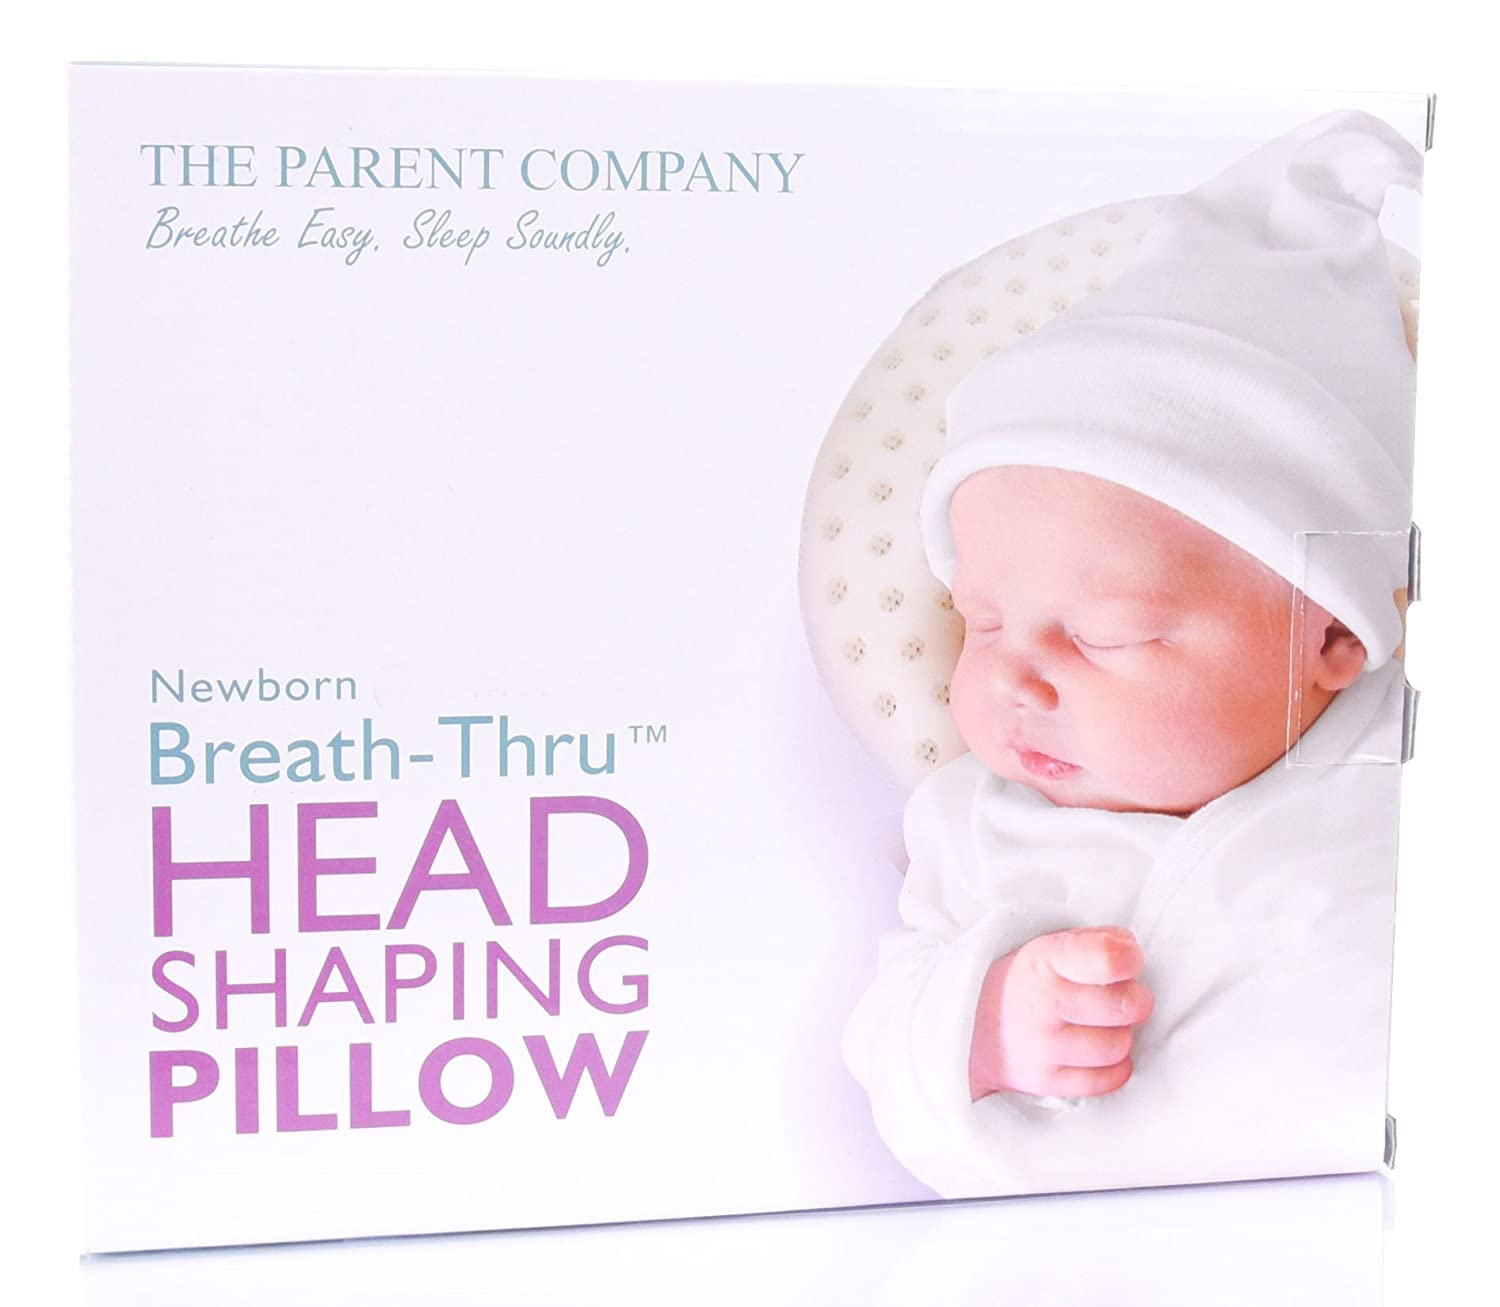 Newborn (Premie) Baby Head Shaping Pillow | Breathe-Thru Cushion for Head Support & Flat Head Syndrome (Positional Plagiocephaly) Prevention | 13-17 Inch Head Circumference The Parent Company